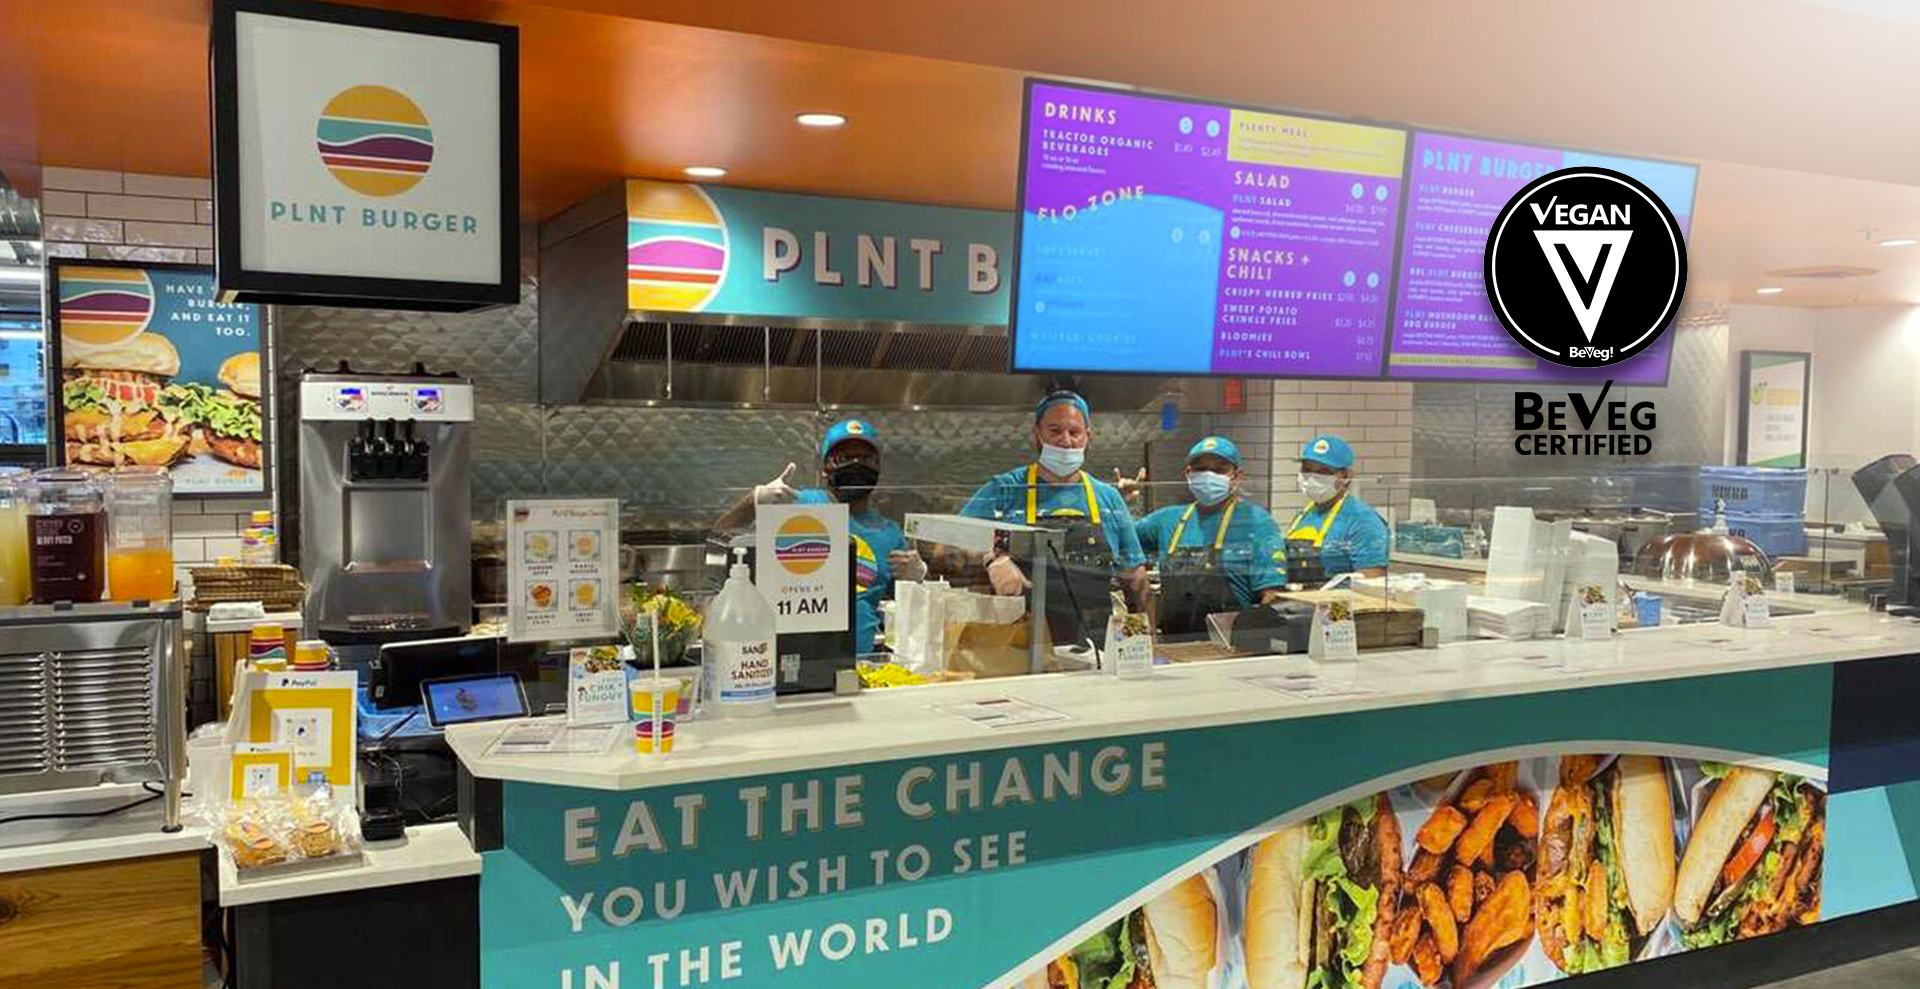 JANE UNCHAINED NEWS: PLNT BURGER'S 7TH STORE OPENING IN WHOLE FOODS, VEGAN CERTIFIED BY BEVEG